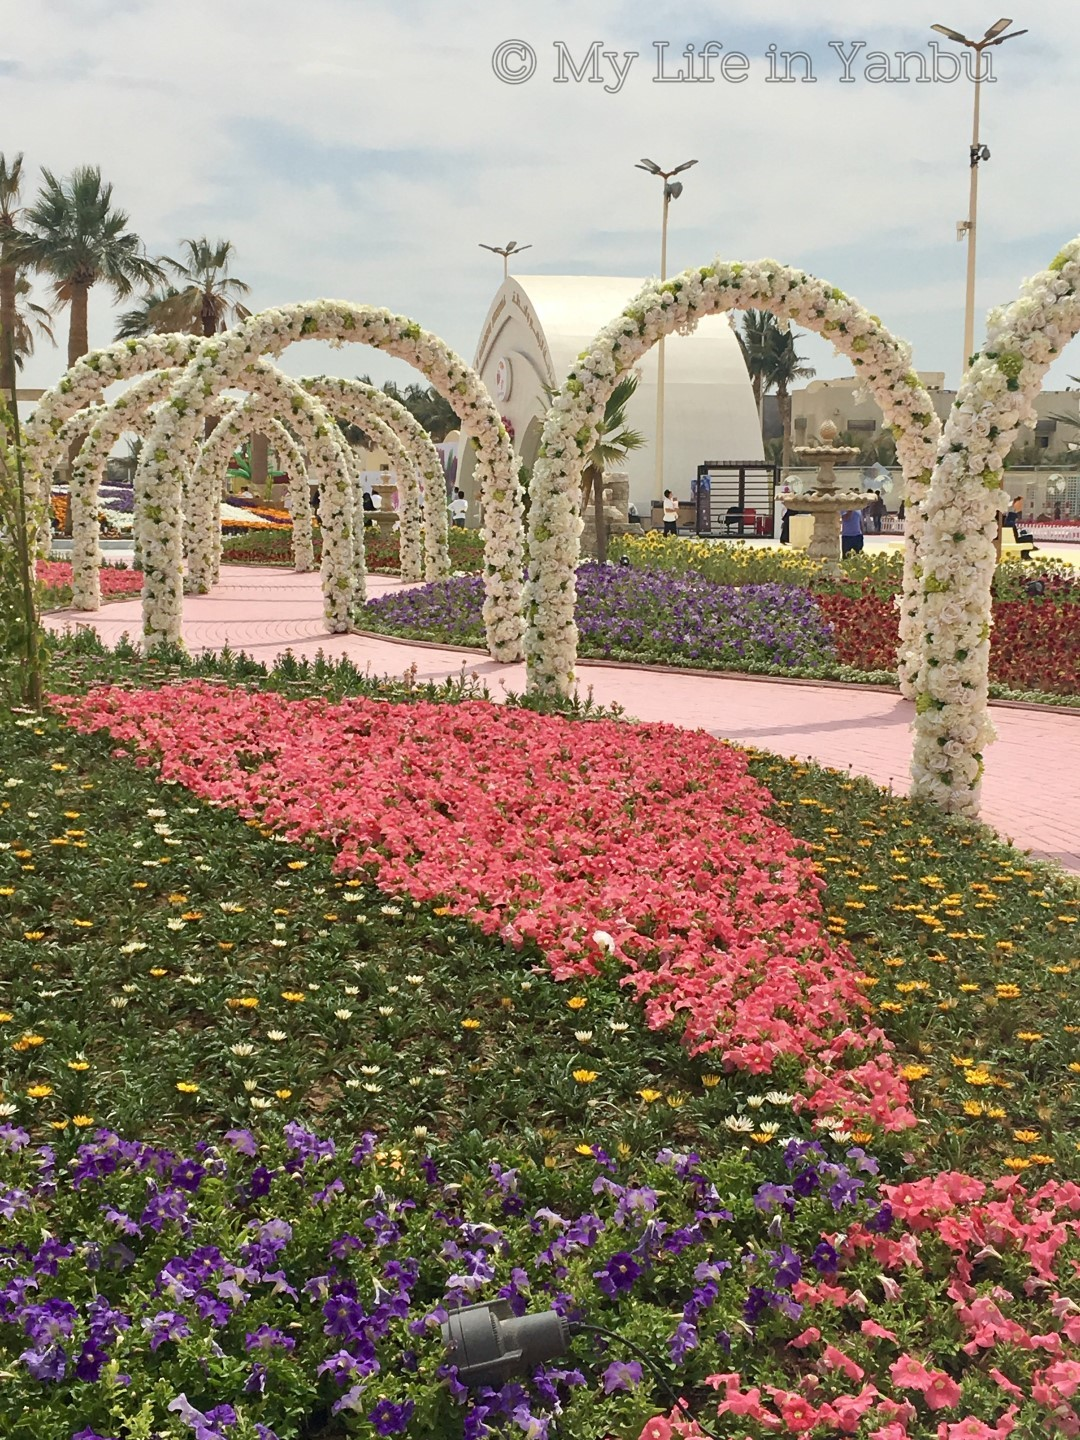 my life in yanbu!: yanbu flower festival 2017